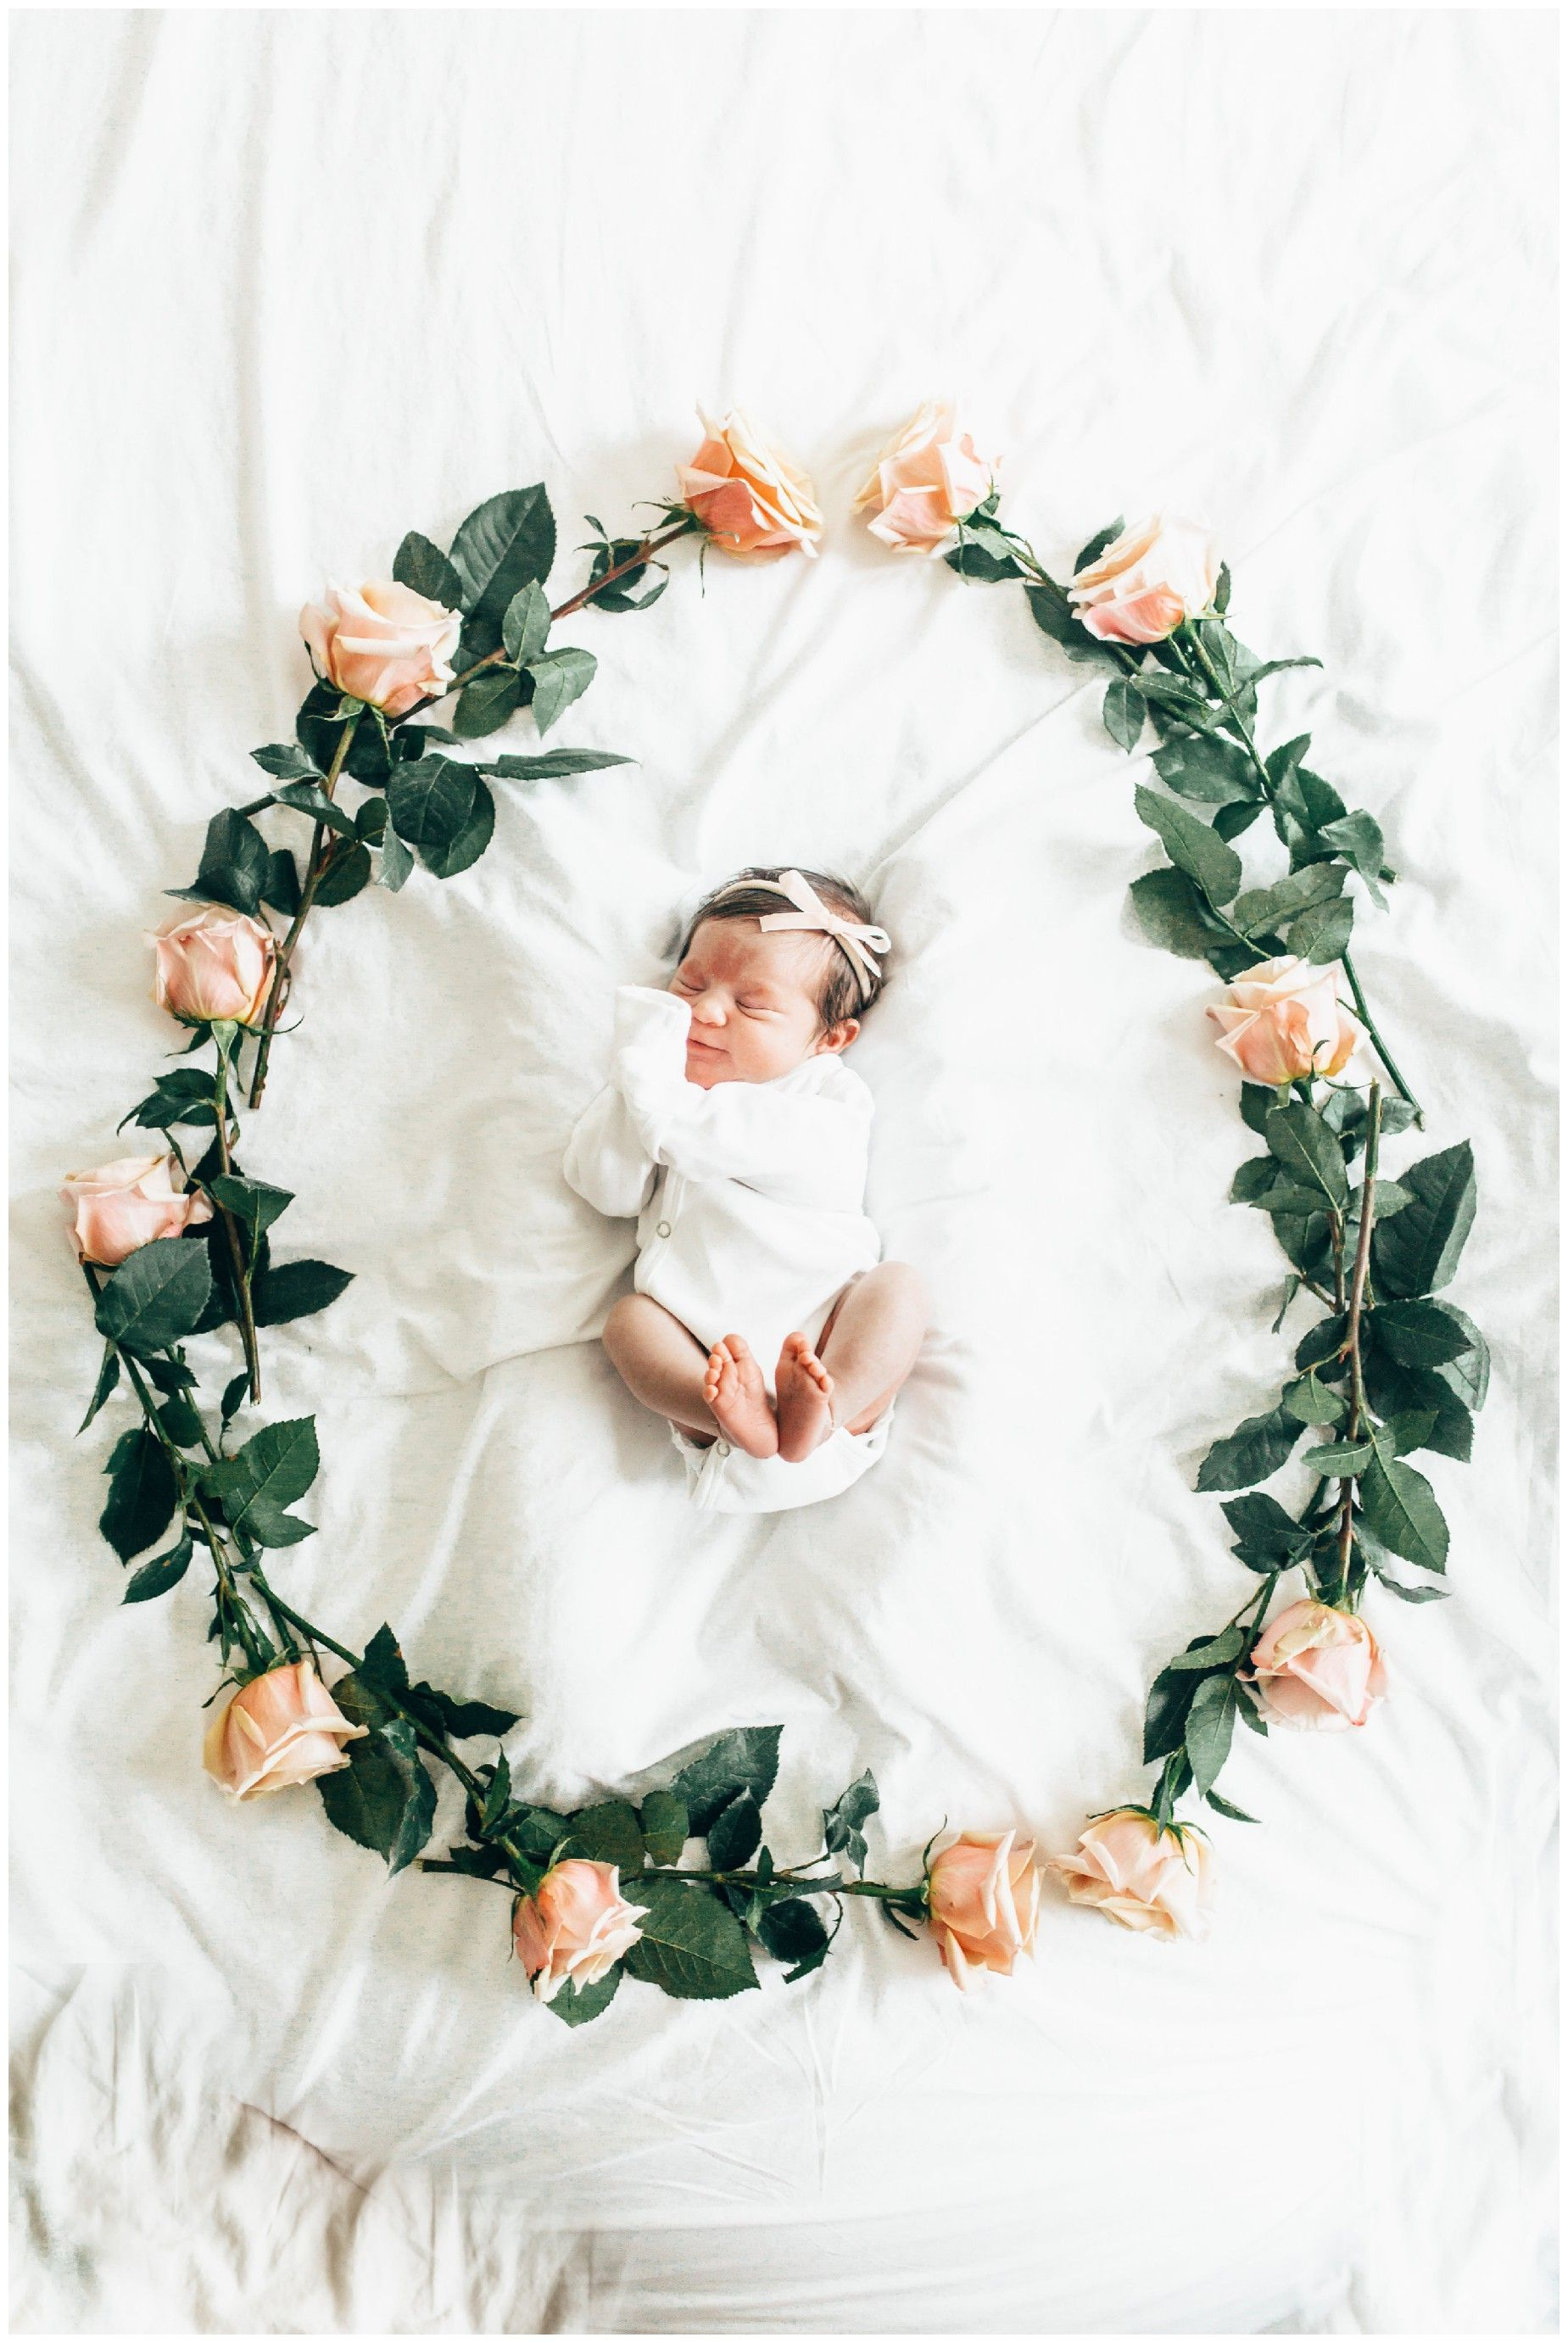 Pin on Lifestyle Newborn Photography